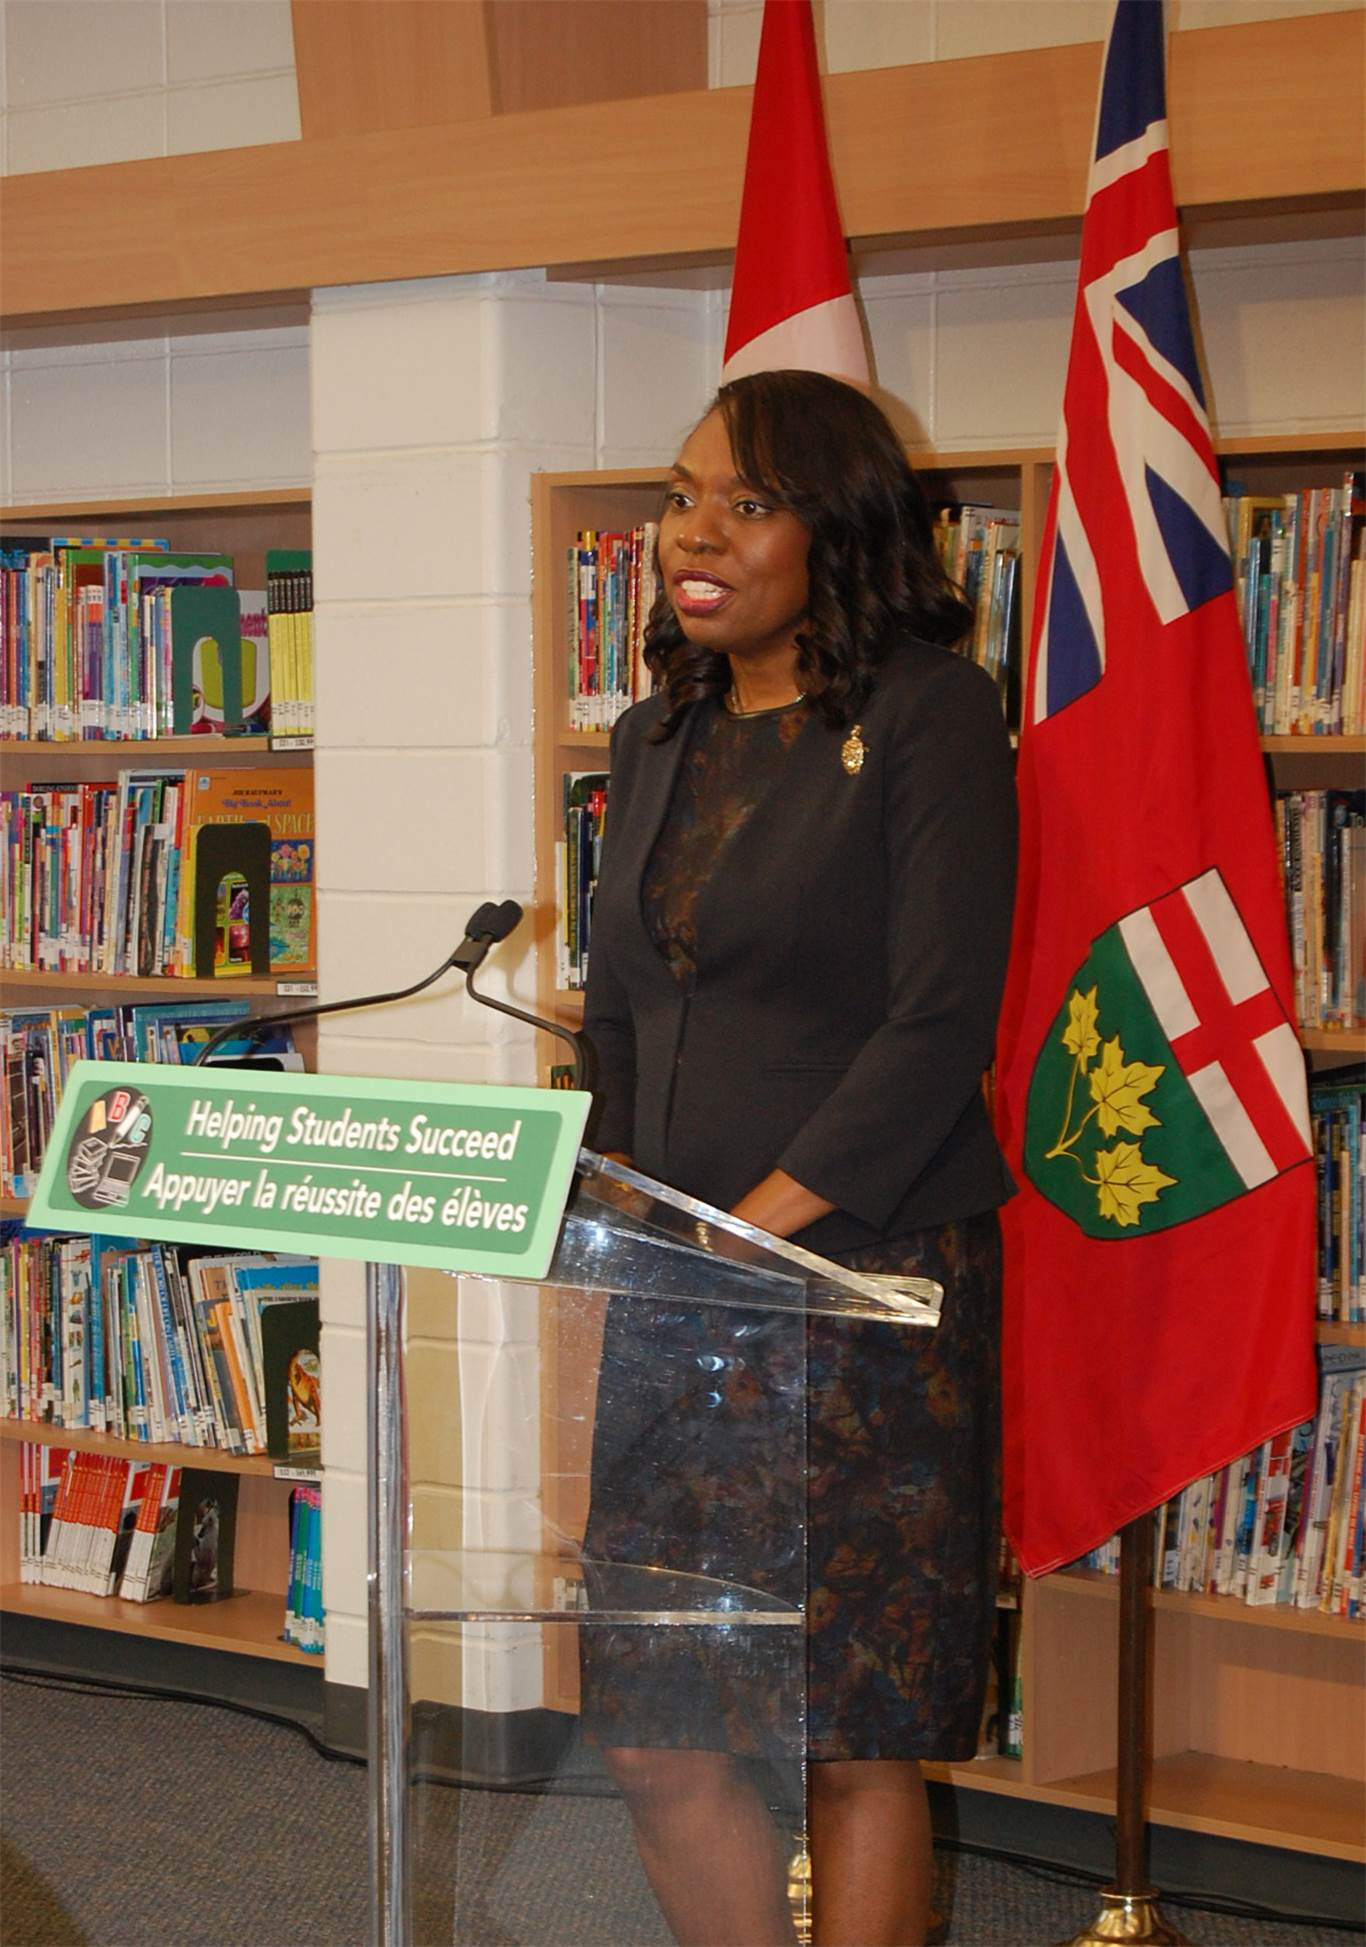 Minister of Education Mitzie Hunter: